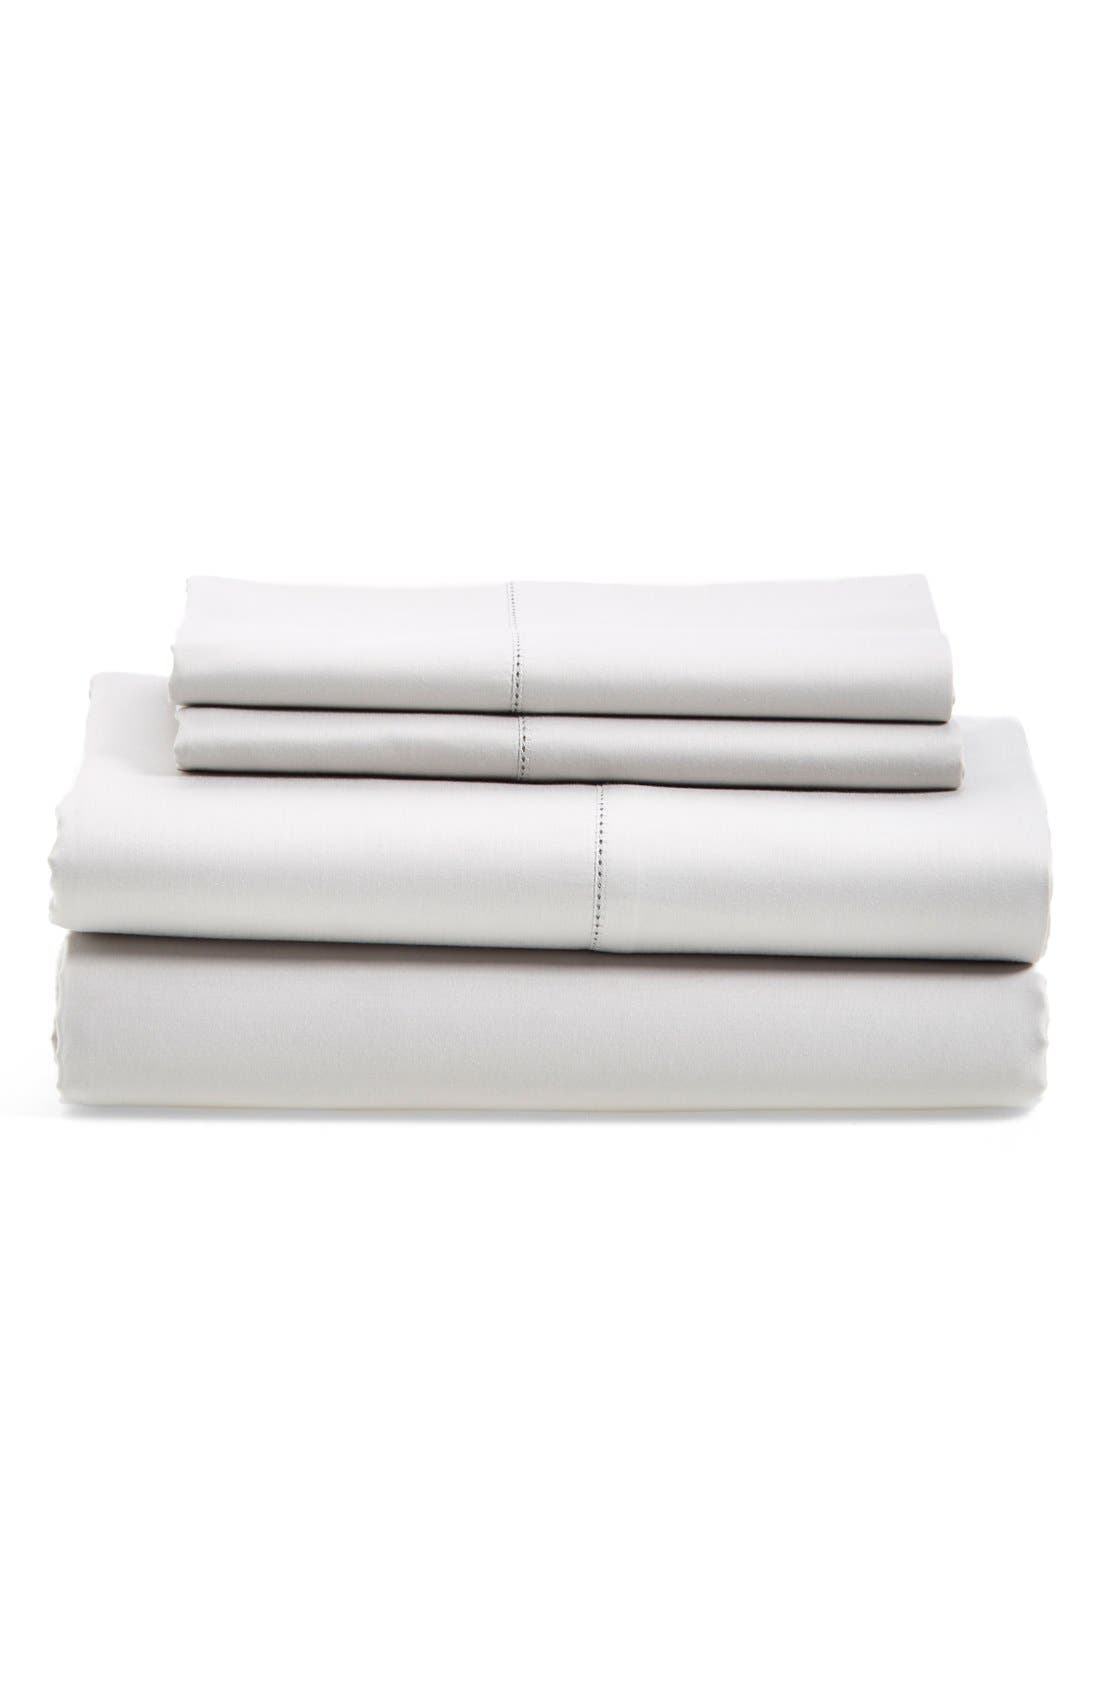 Nordstrom at Home 600 Thread Count Egyptian Cotton Single Sheets